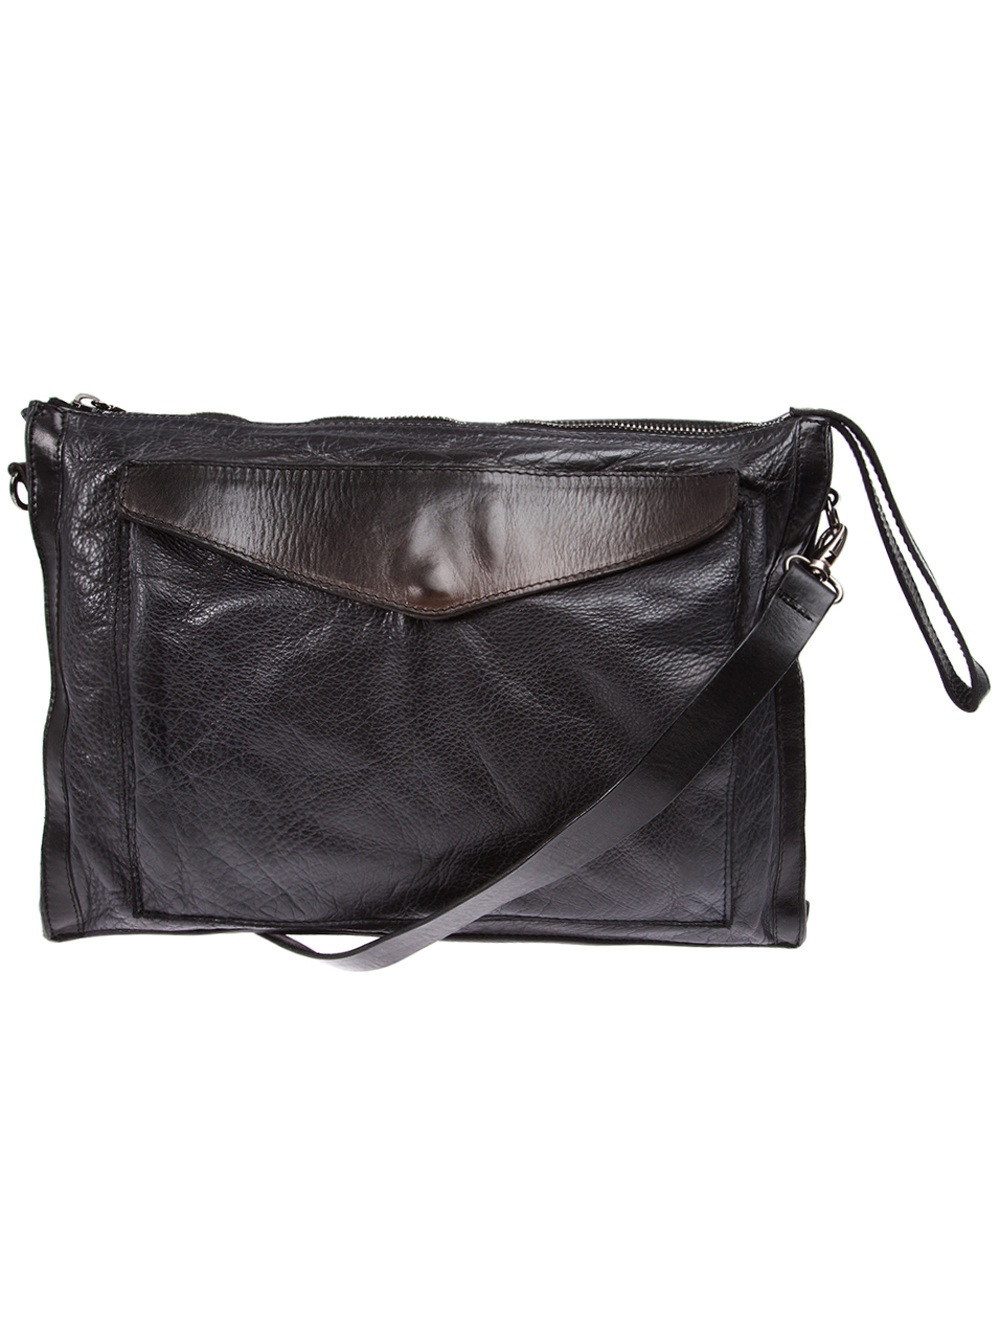 54da81f086 Numero 10 Cruzeiro Cross Body Bag in Black for Men